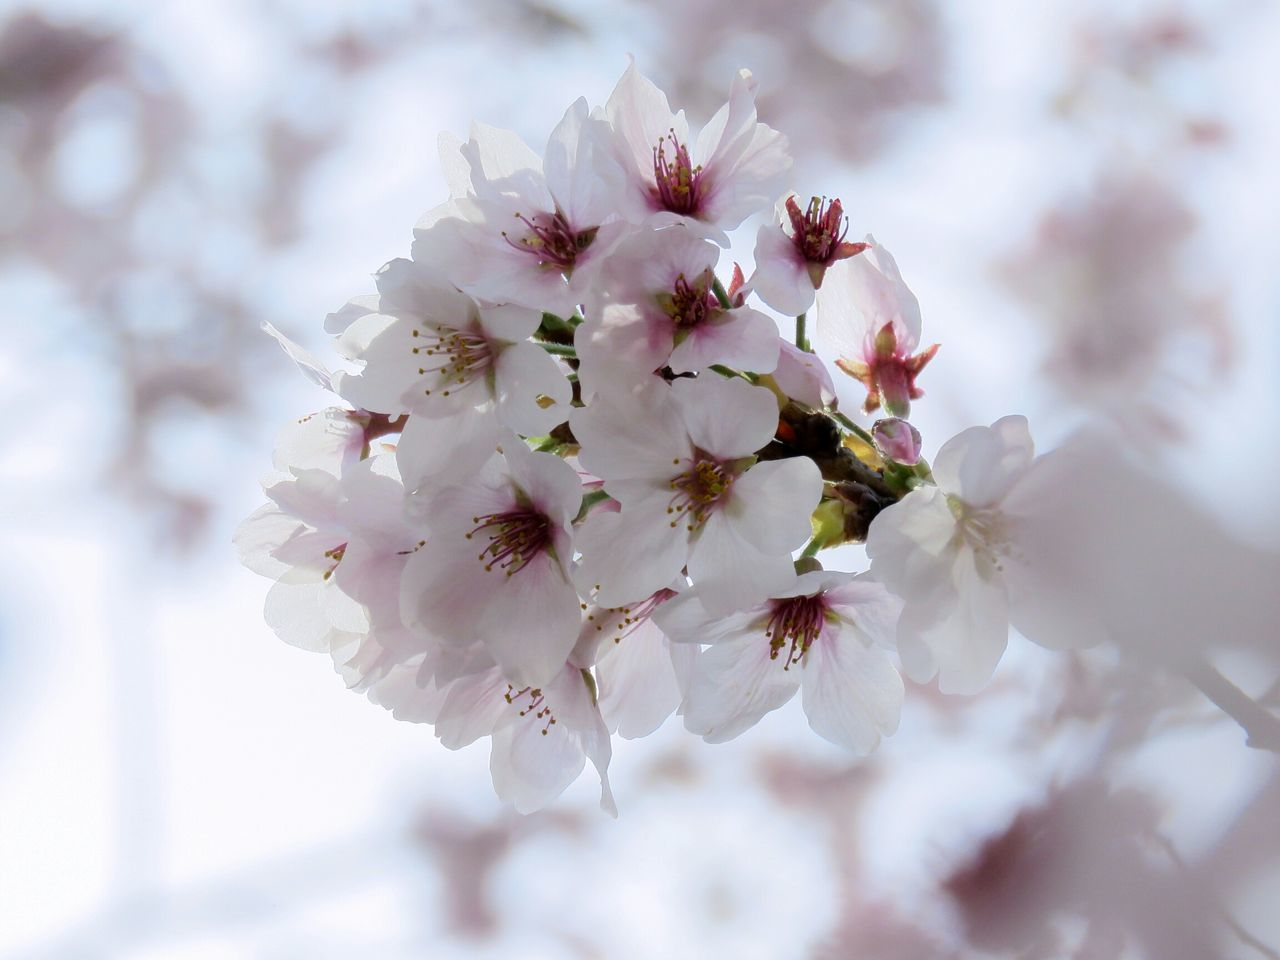 flower, freshness, fragility, cherry blossom, growth, branch, beauty in nature, tree, petal, cherry tree, blossom, nature, close-up, focus on foreground, white color, in bloom, fruit tree, twig, flower head, blooming